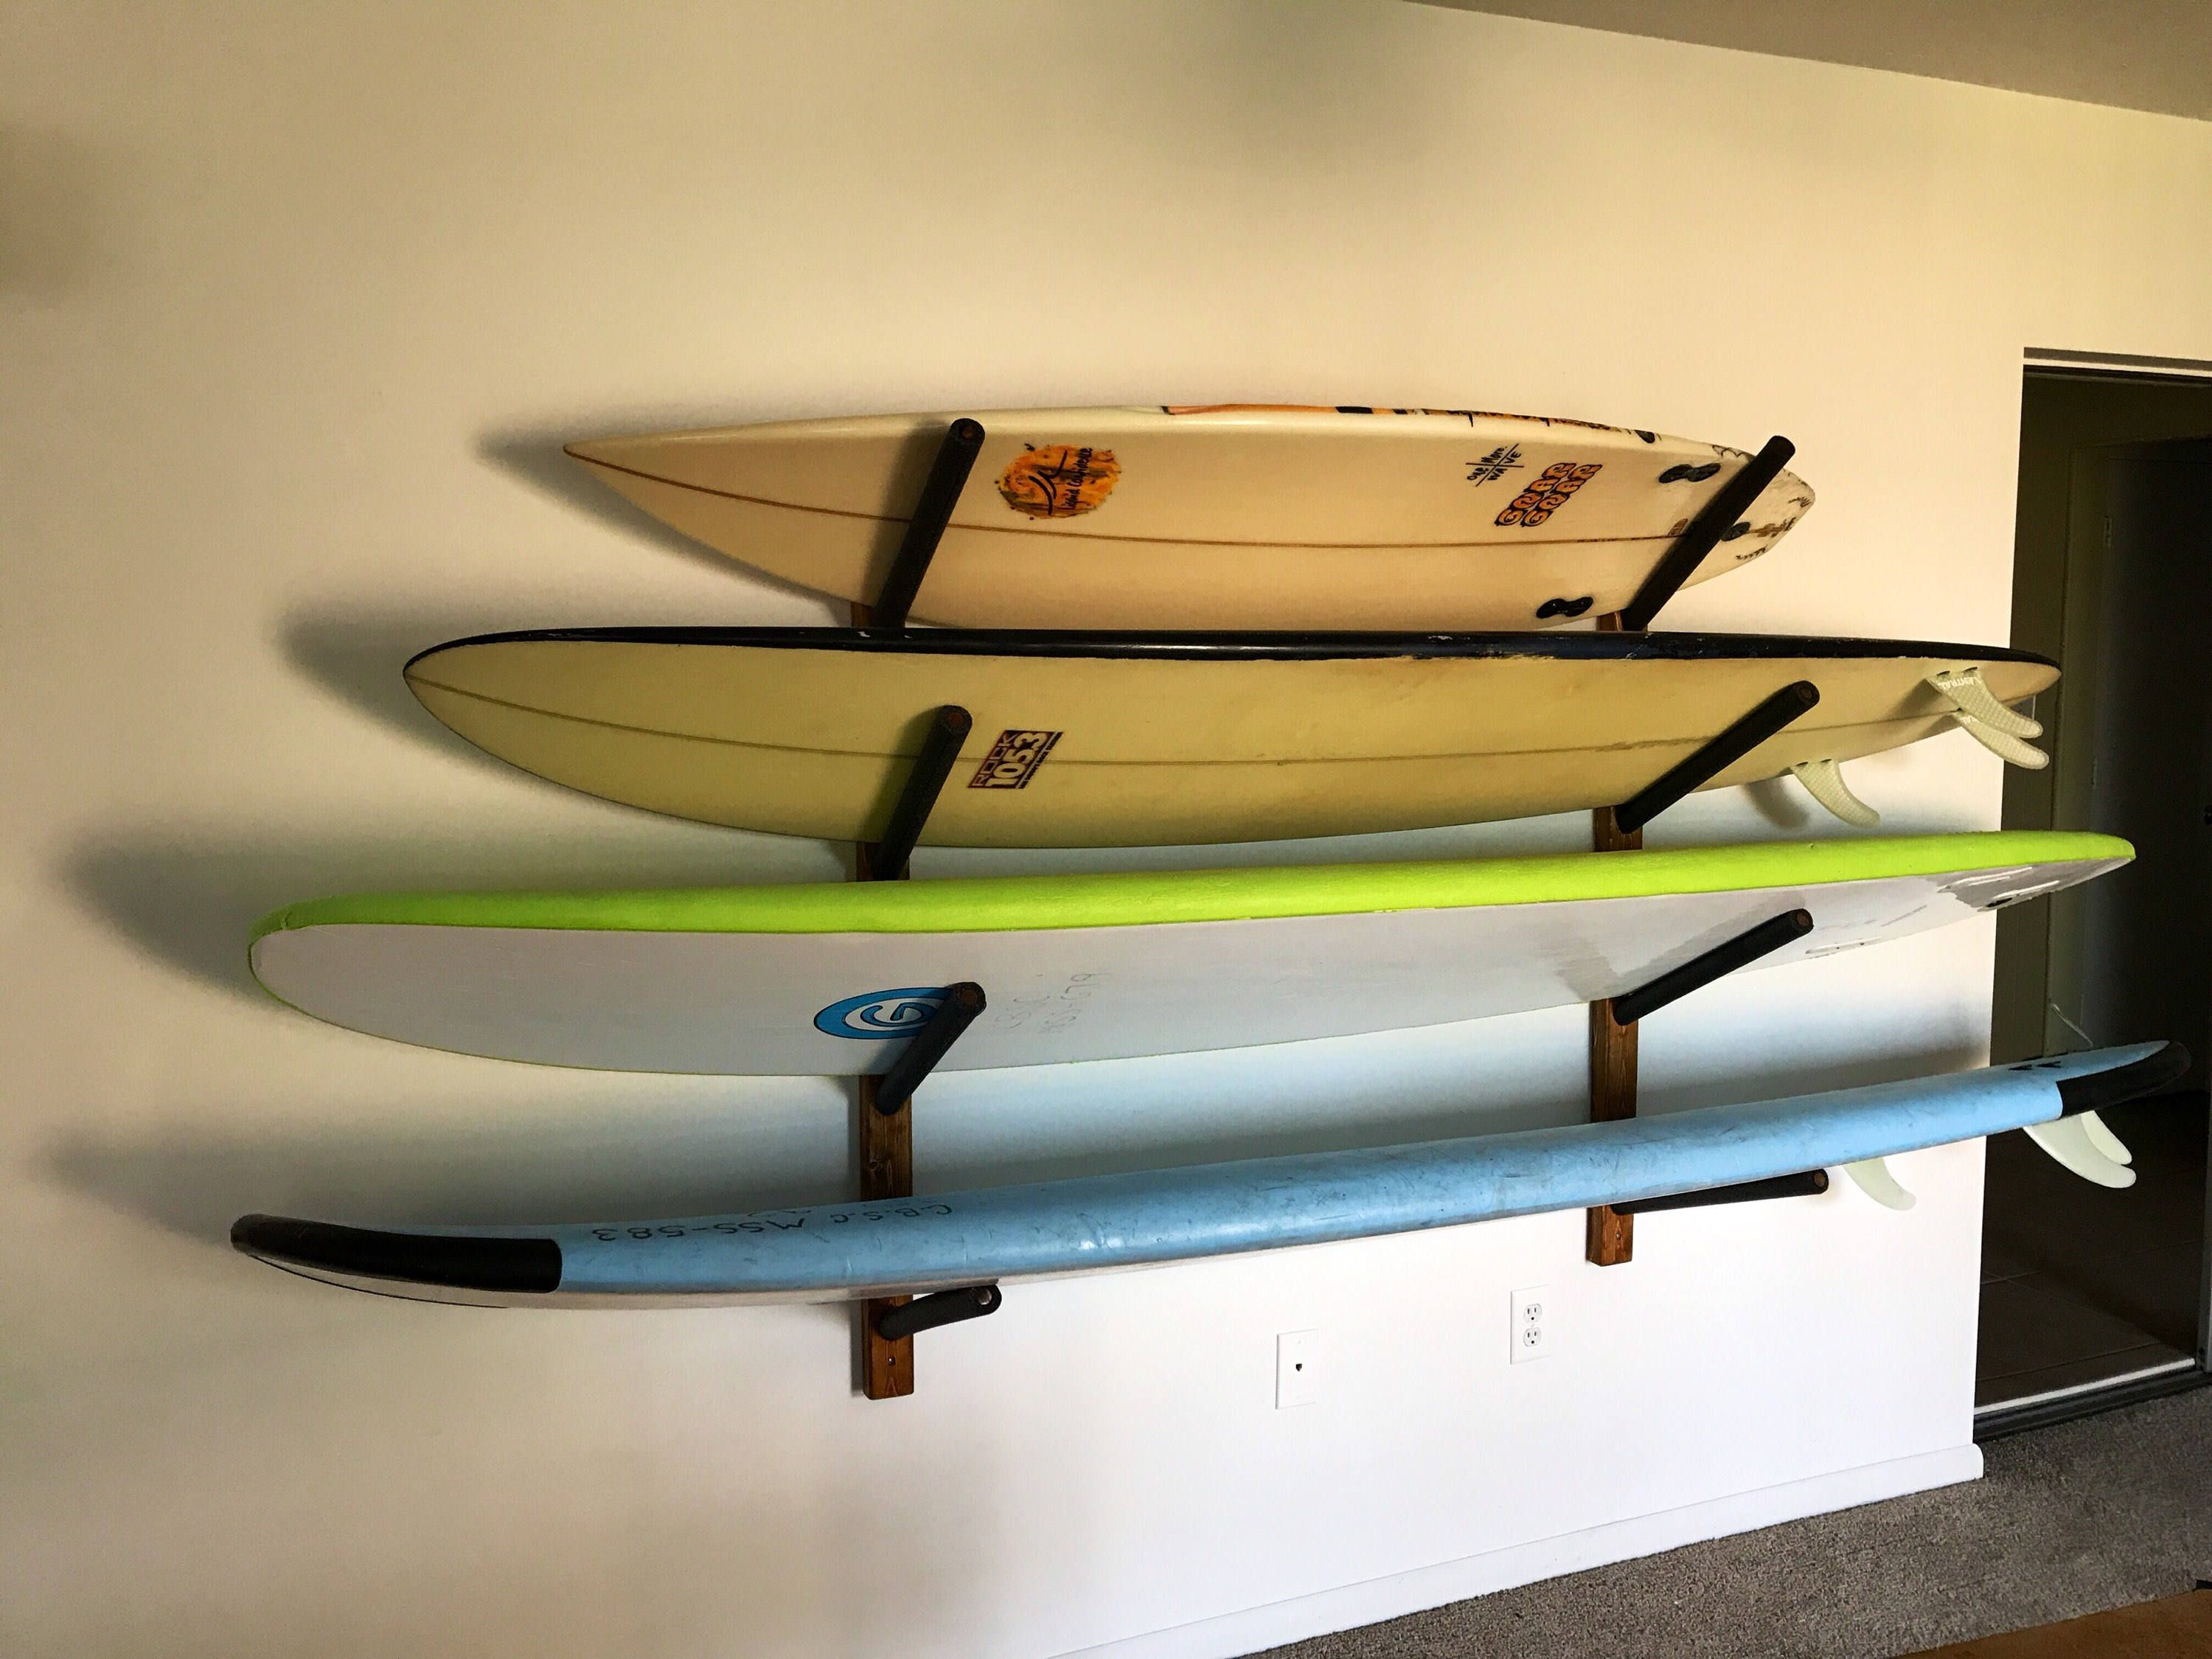 Surfboard Wall Hanger Holds 4+ Surfboards Wood Rack | Wood rack ...